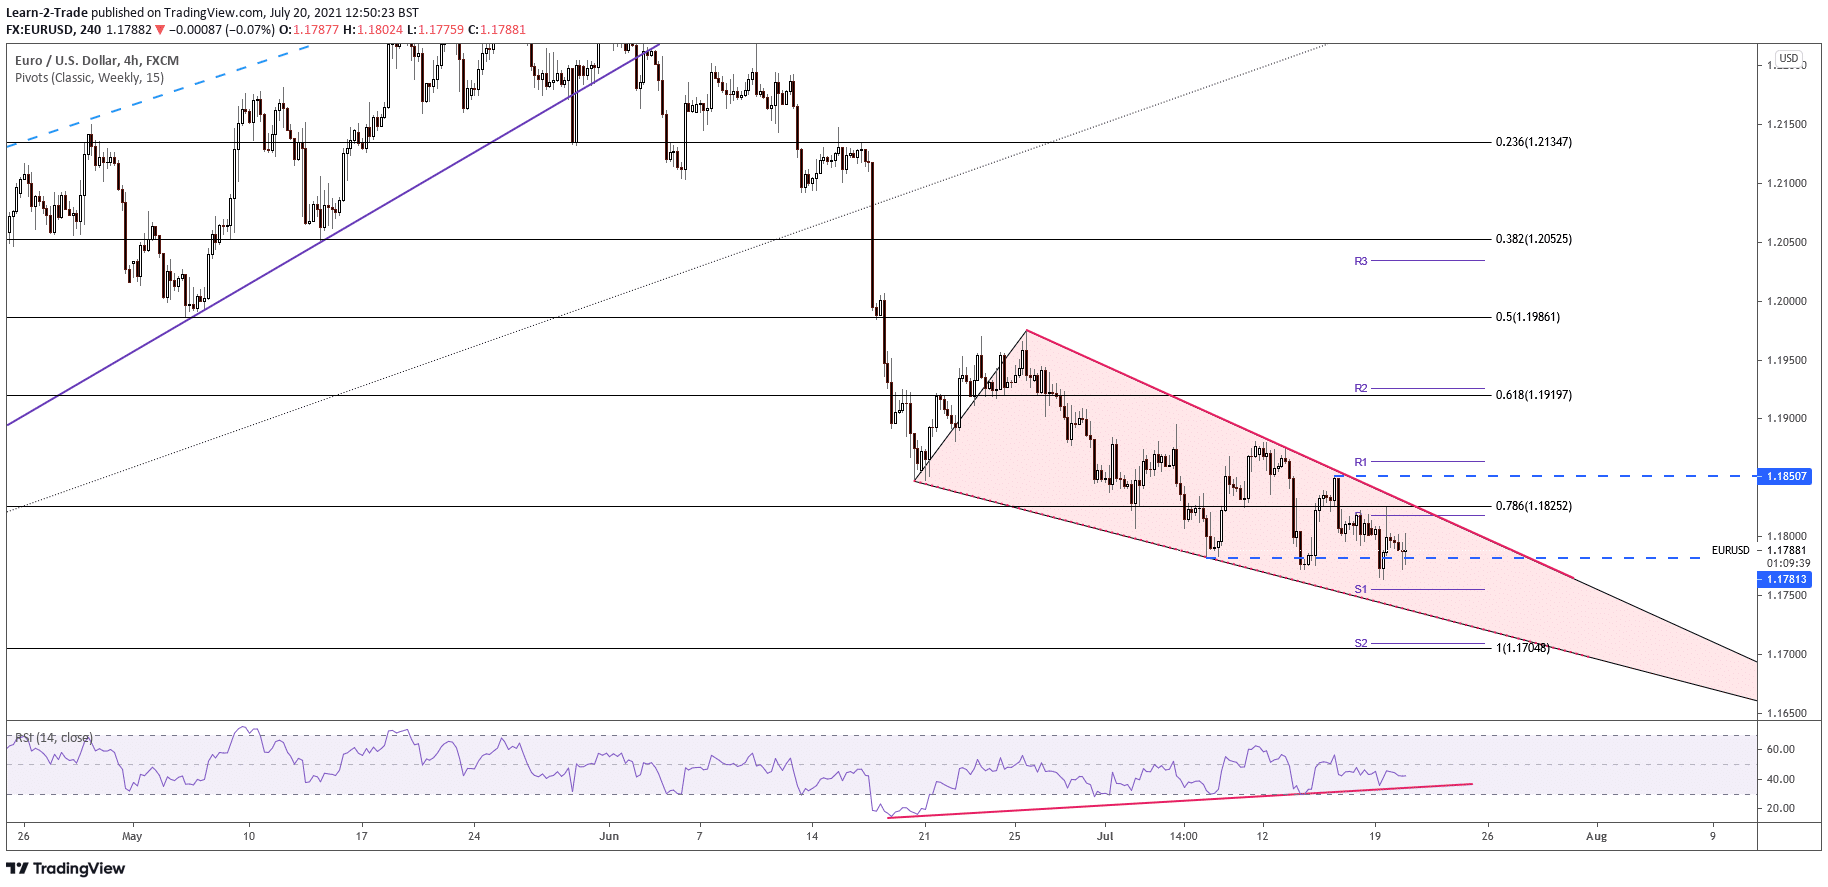 EUR/USD 4-hour chart outlook